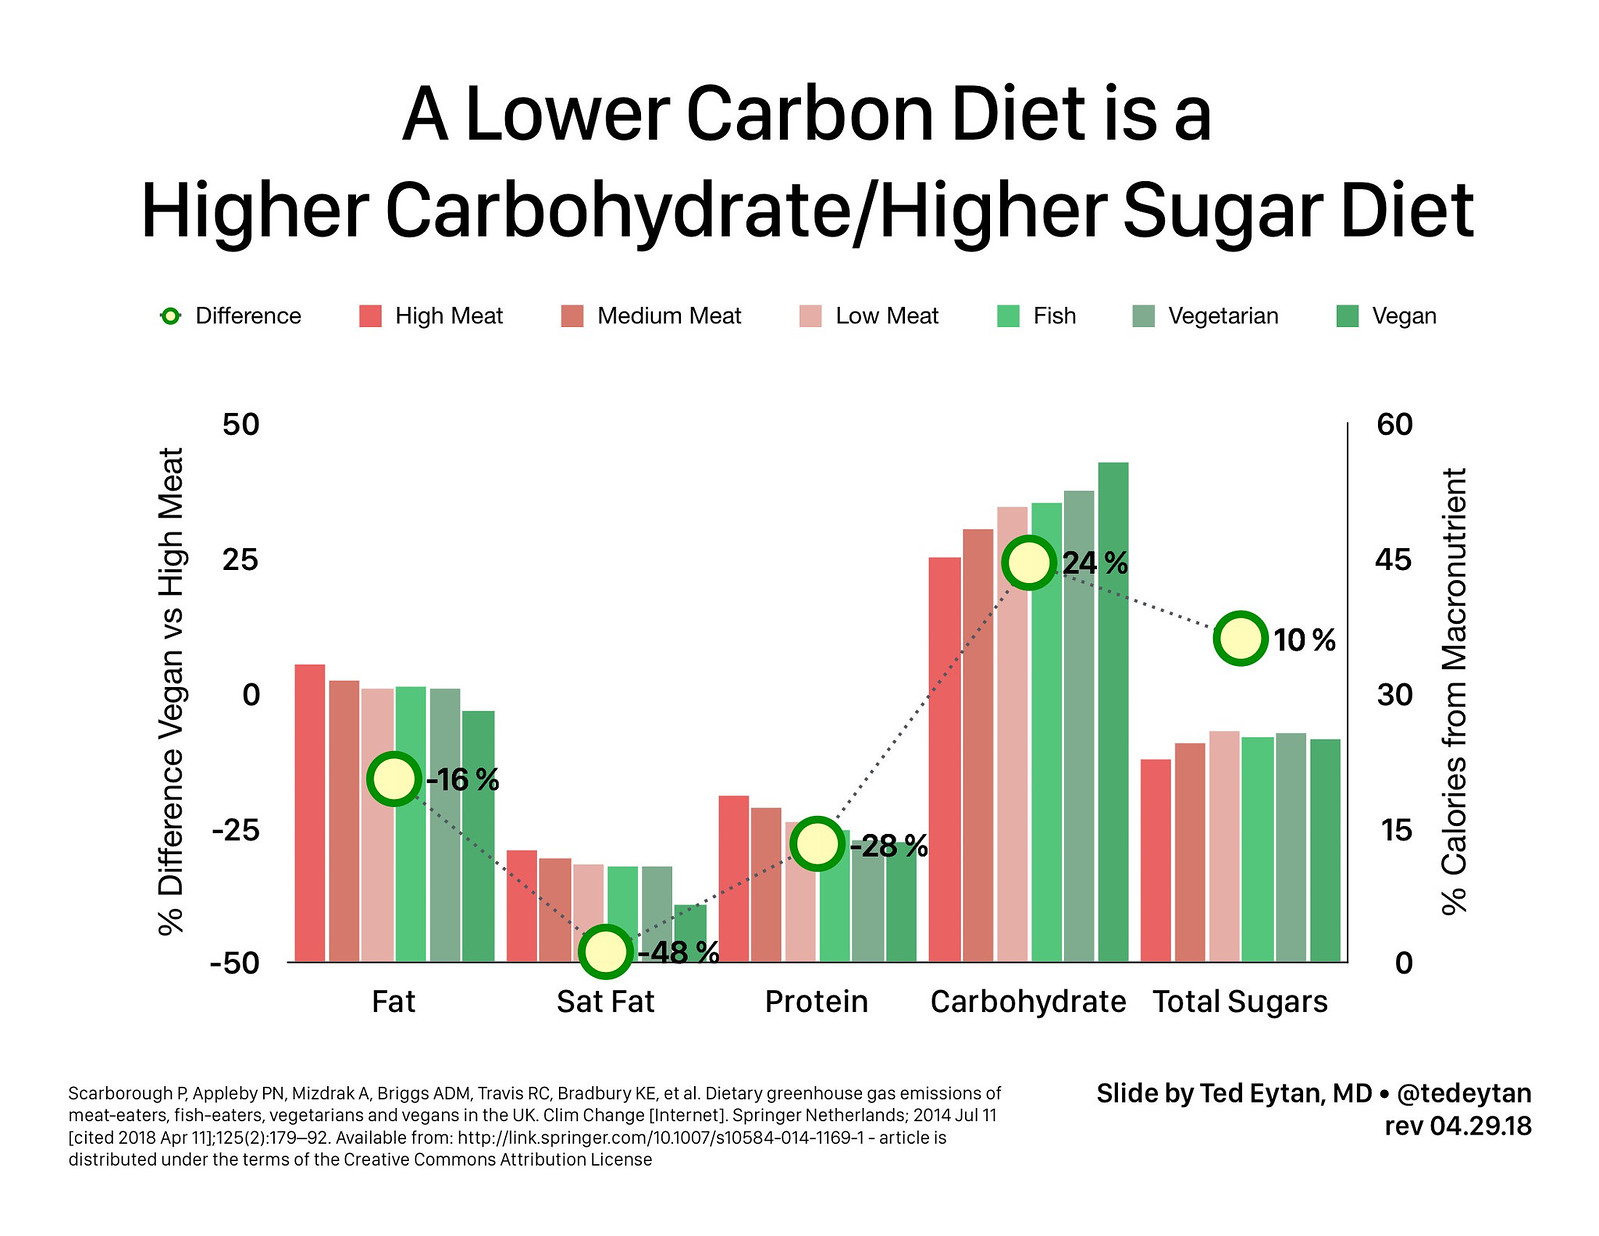 2018.04.29 A Lower Carbon Diet is a Higher Carbohydrate Diet 381